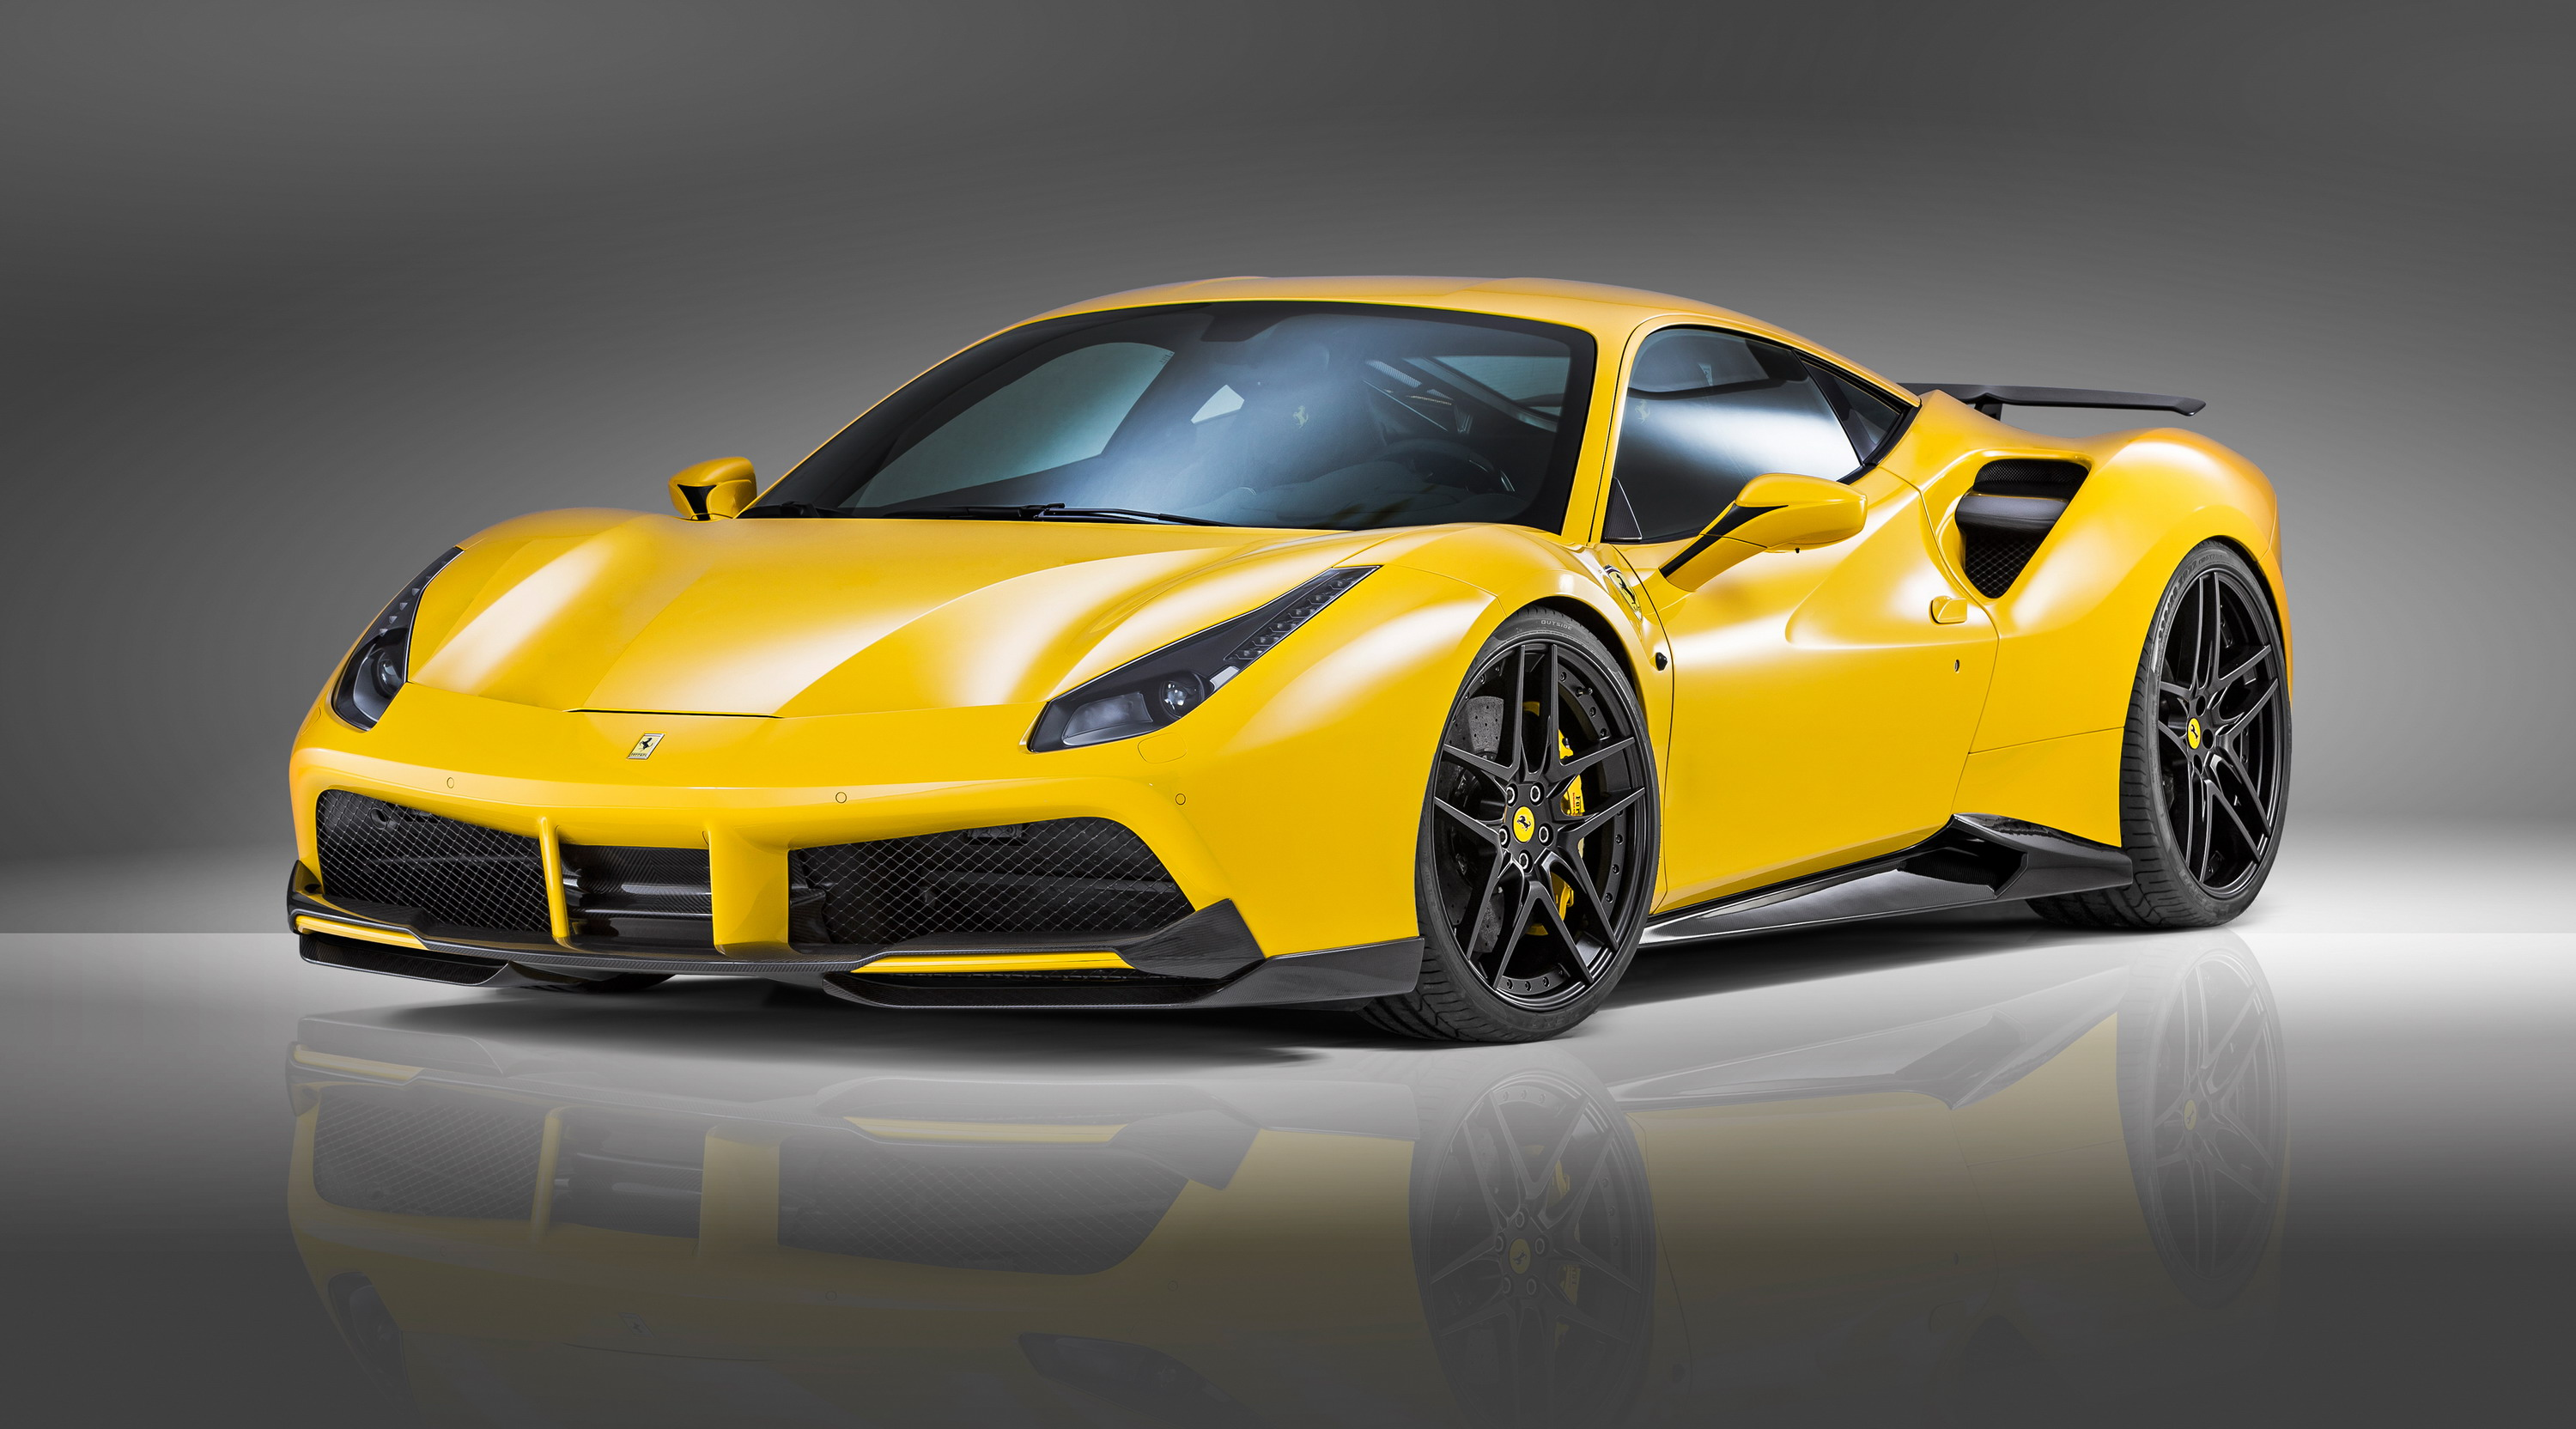 2016 ferrari 488 gtb by novitec rosso review gallery top speed. Black Bedroom Furniture Sets. Home Design Ideas